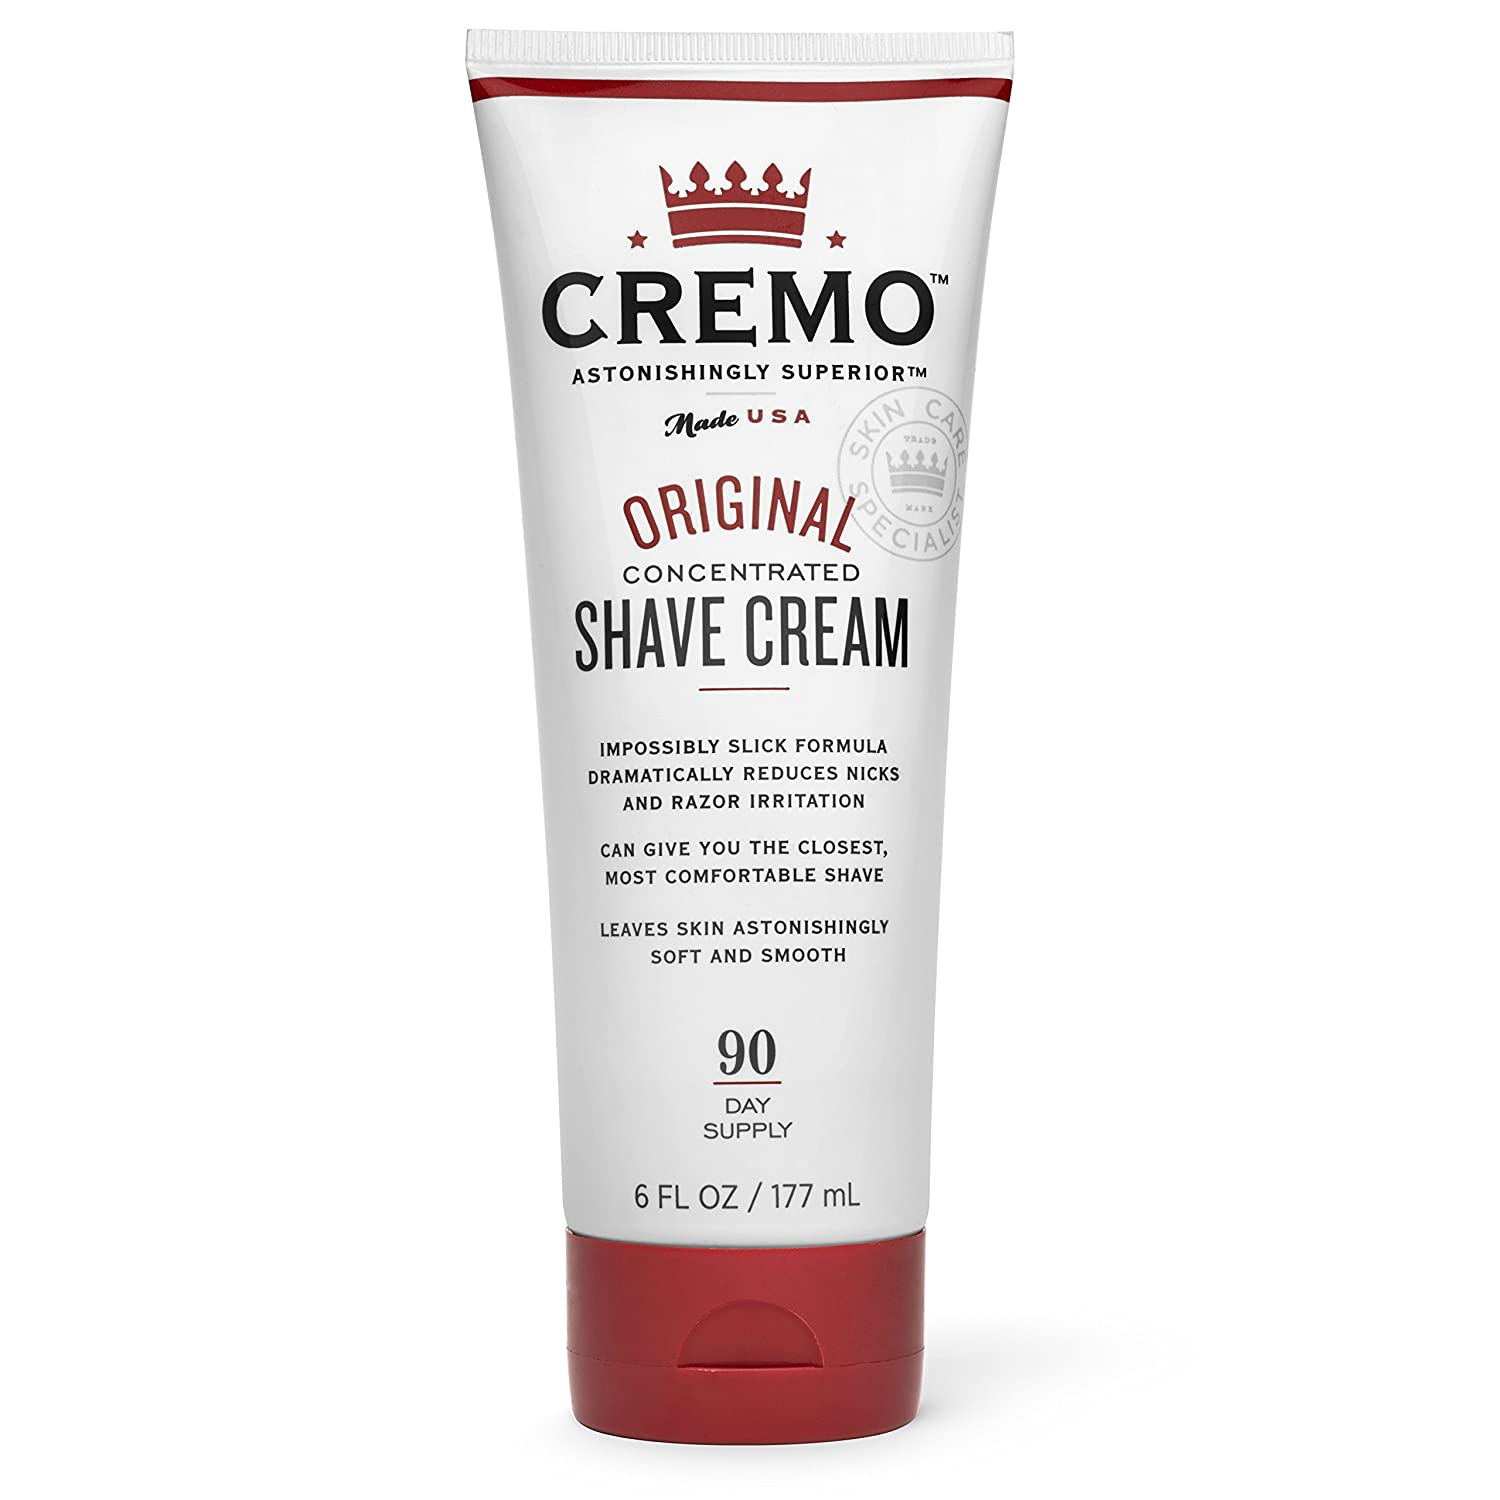 Cremo Original Shave Cream, Astonishingly Superior Shaving Cream for Men,...